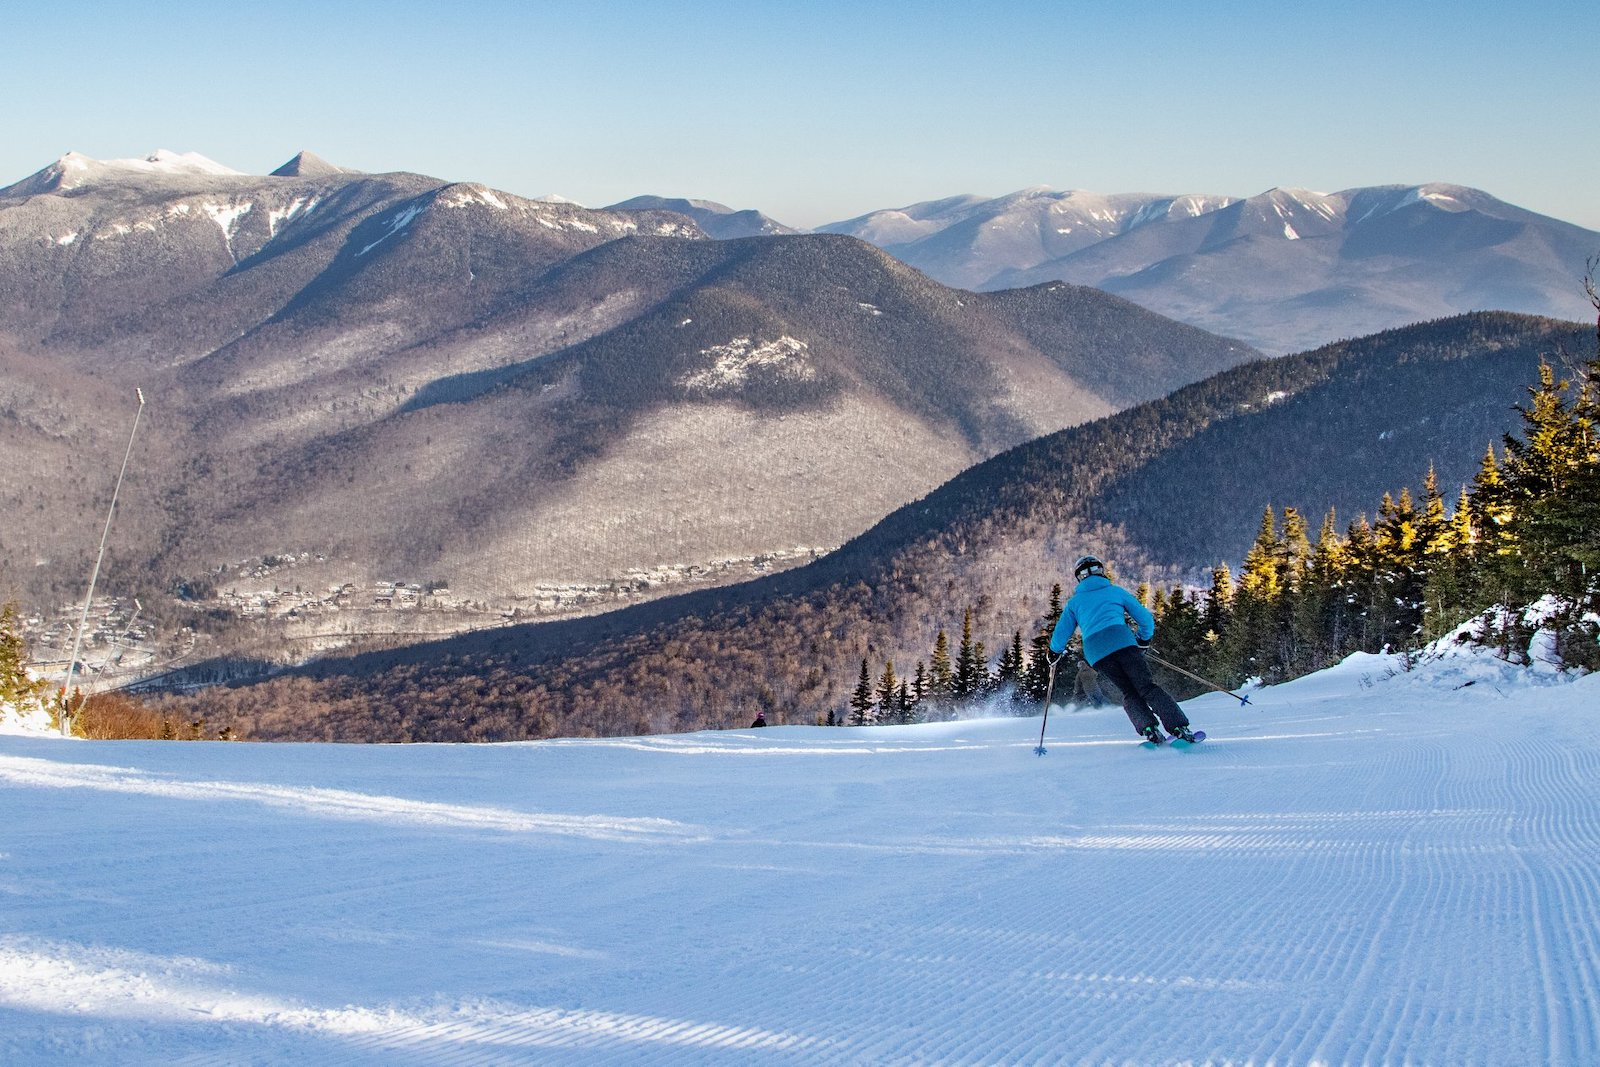 Skier in blue cruising across the snow at Loon Mountain Ski Resort in New Hampshire